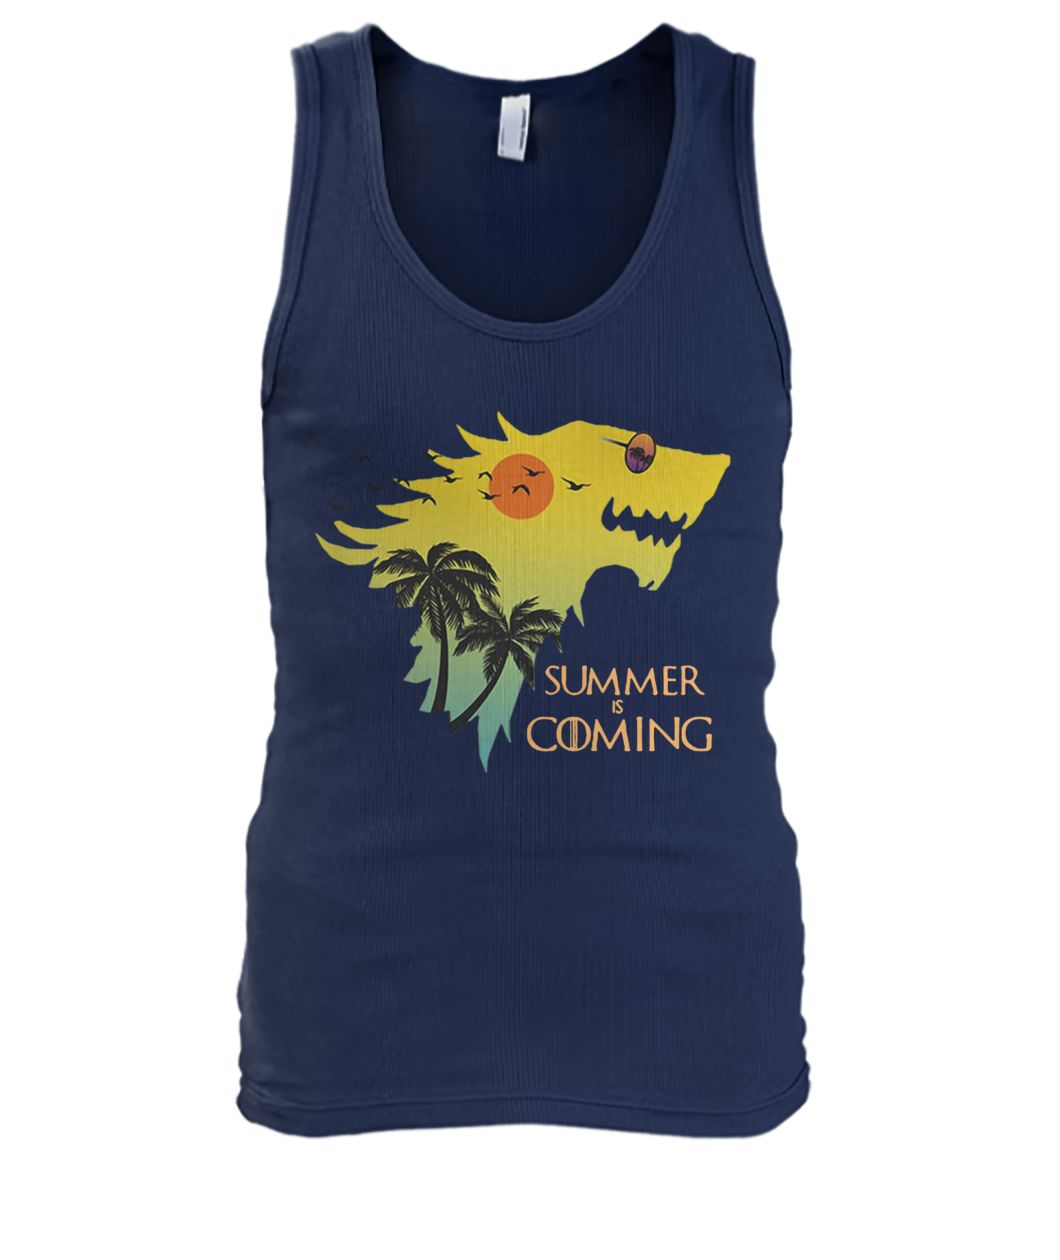 House stark summer is coming game of thrones men's tank top